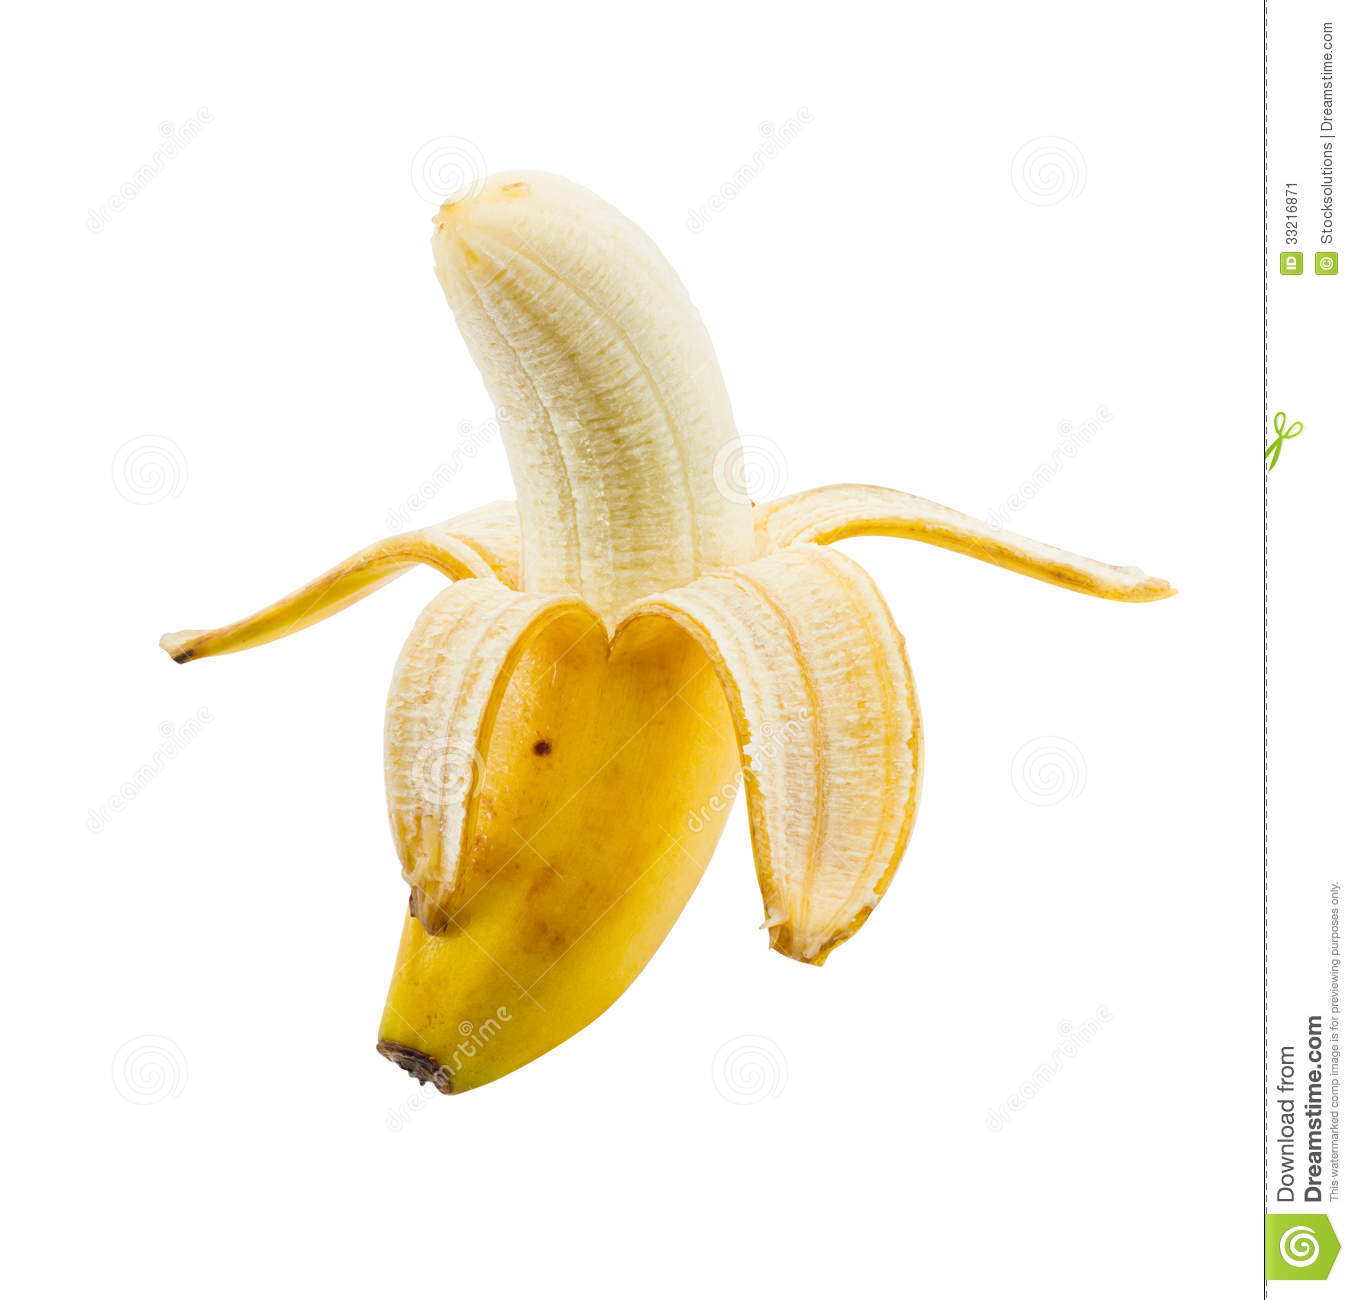 Small Peeled Banana Stock Image - Image: 33216871: https://www.dreamstime.com/stock-image-small-peeled-banana-lunch-box-sized-isolated-white-background-image33216871